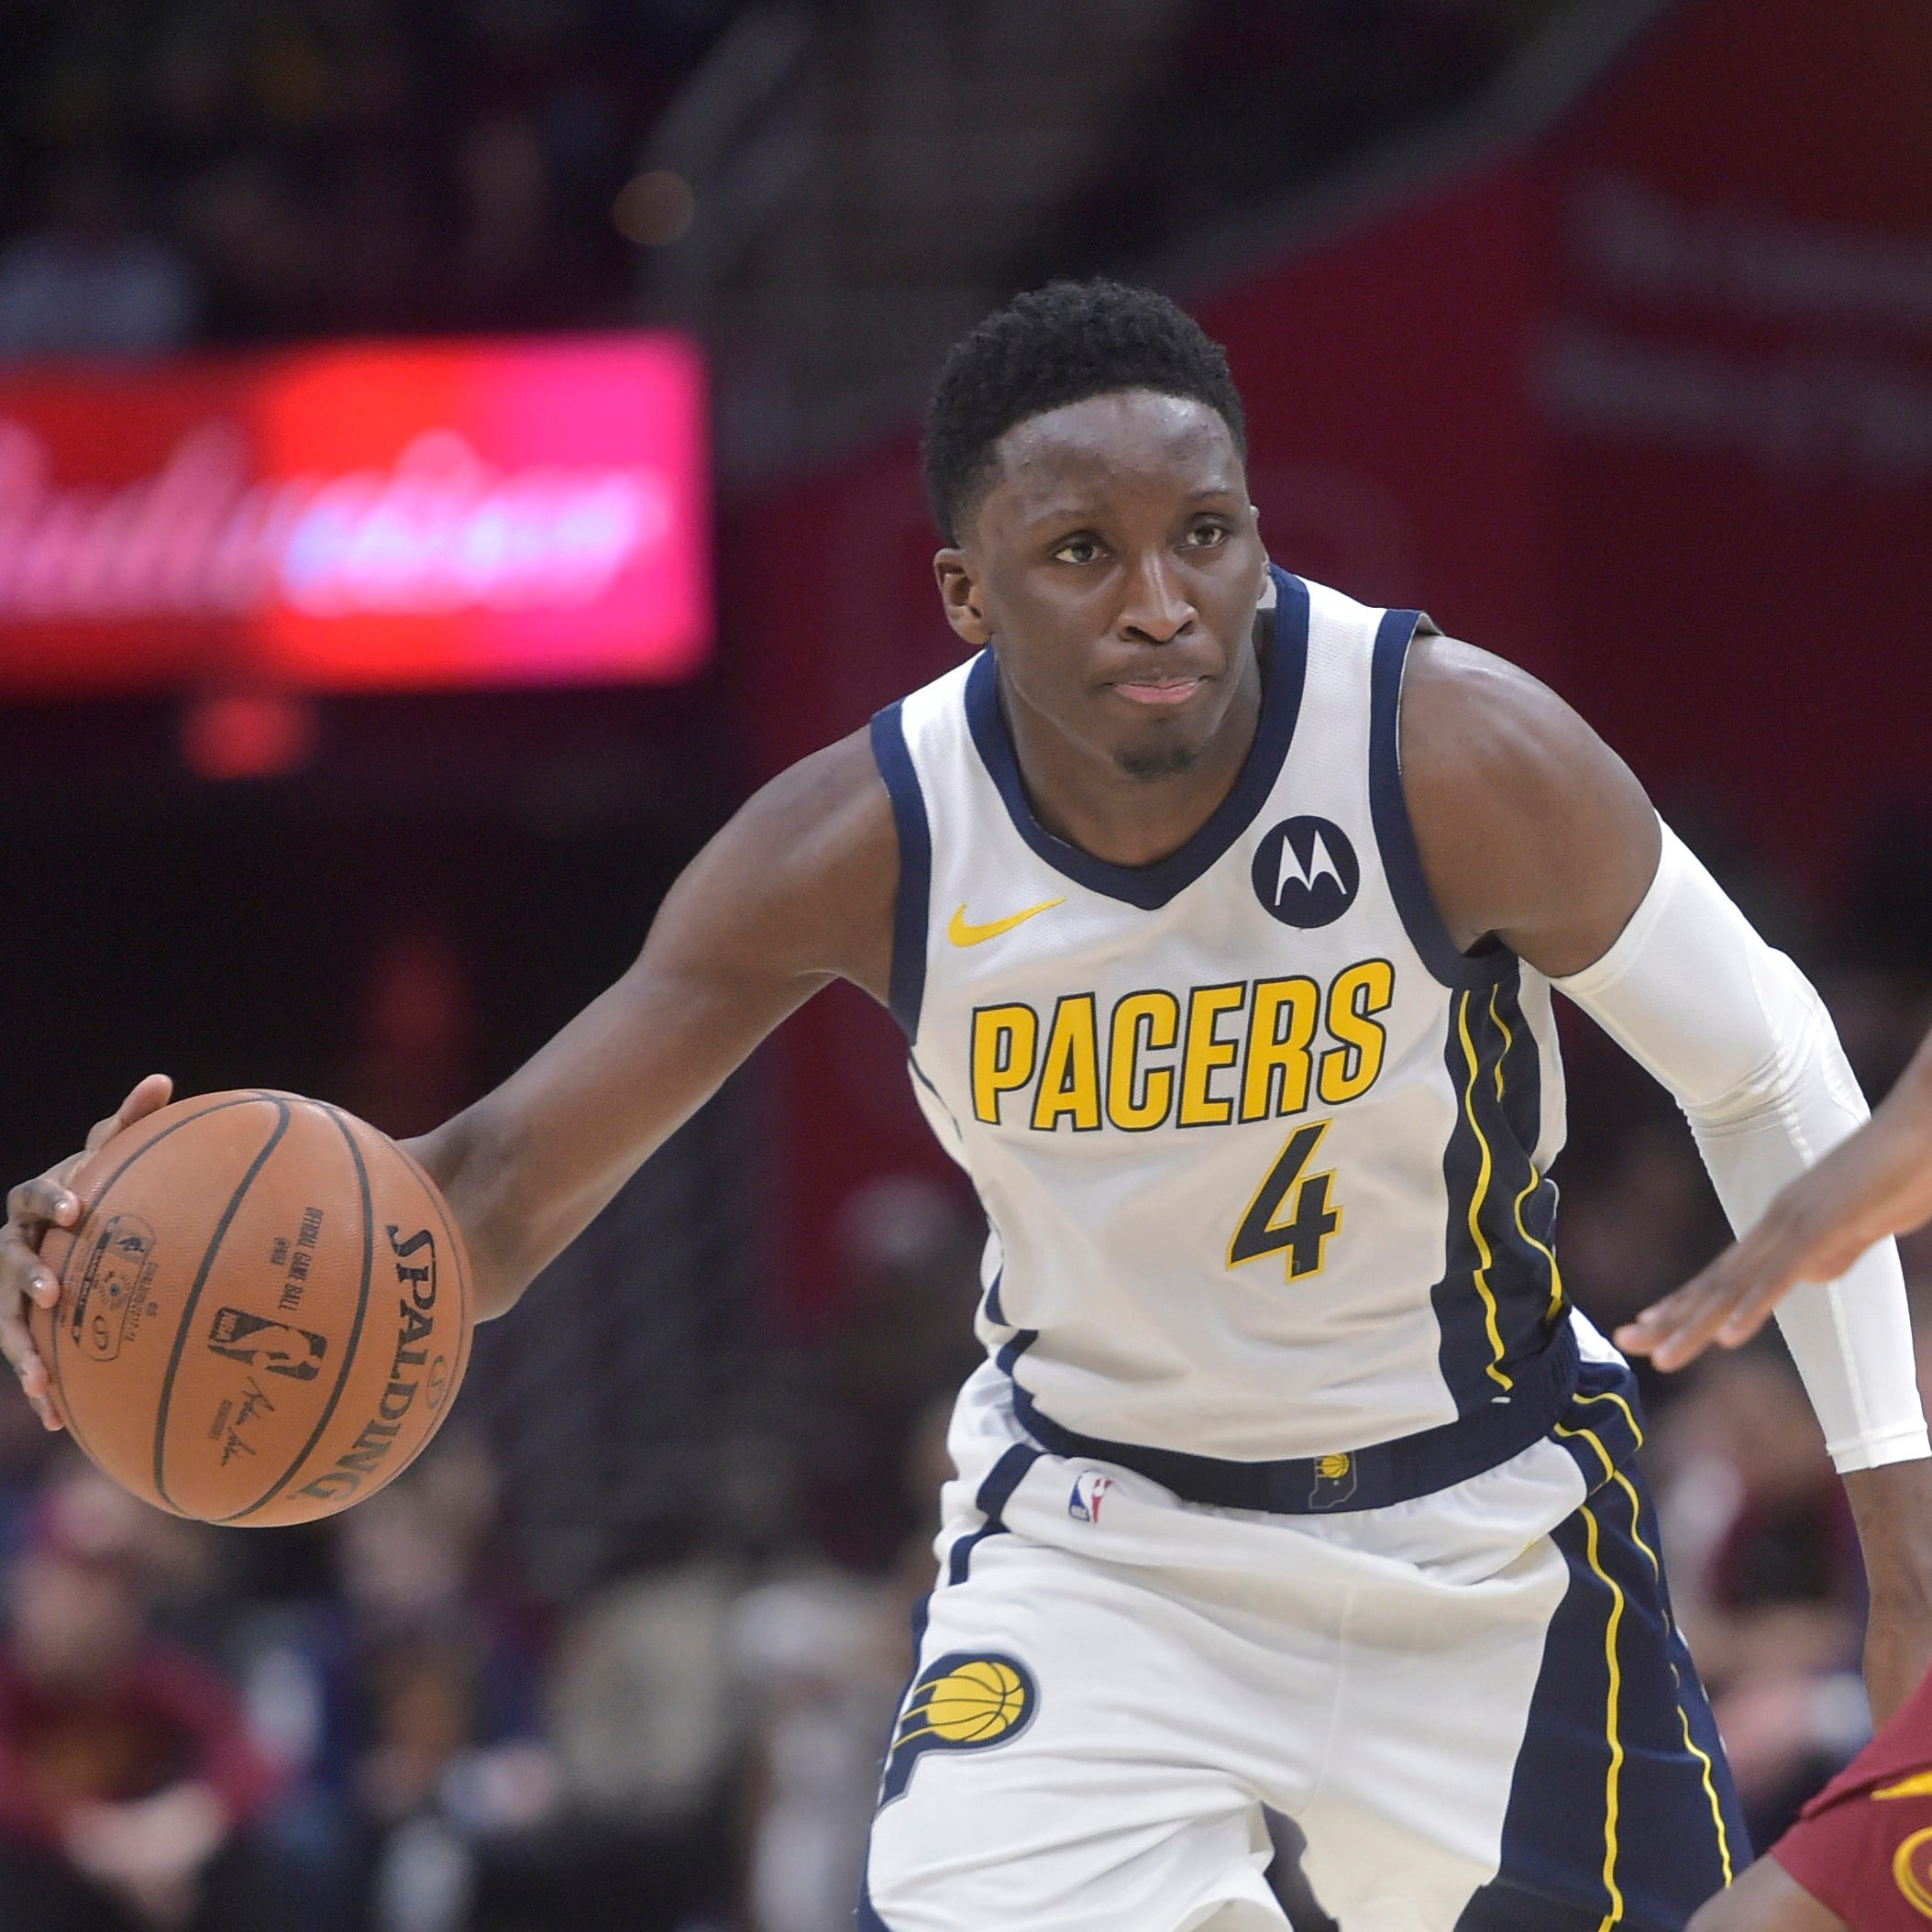 Pacers star Victor Oladipo gives update on knee, talks Pacers playoff chances